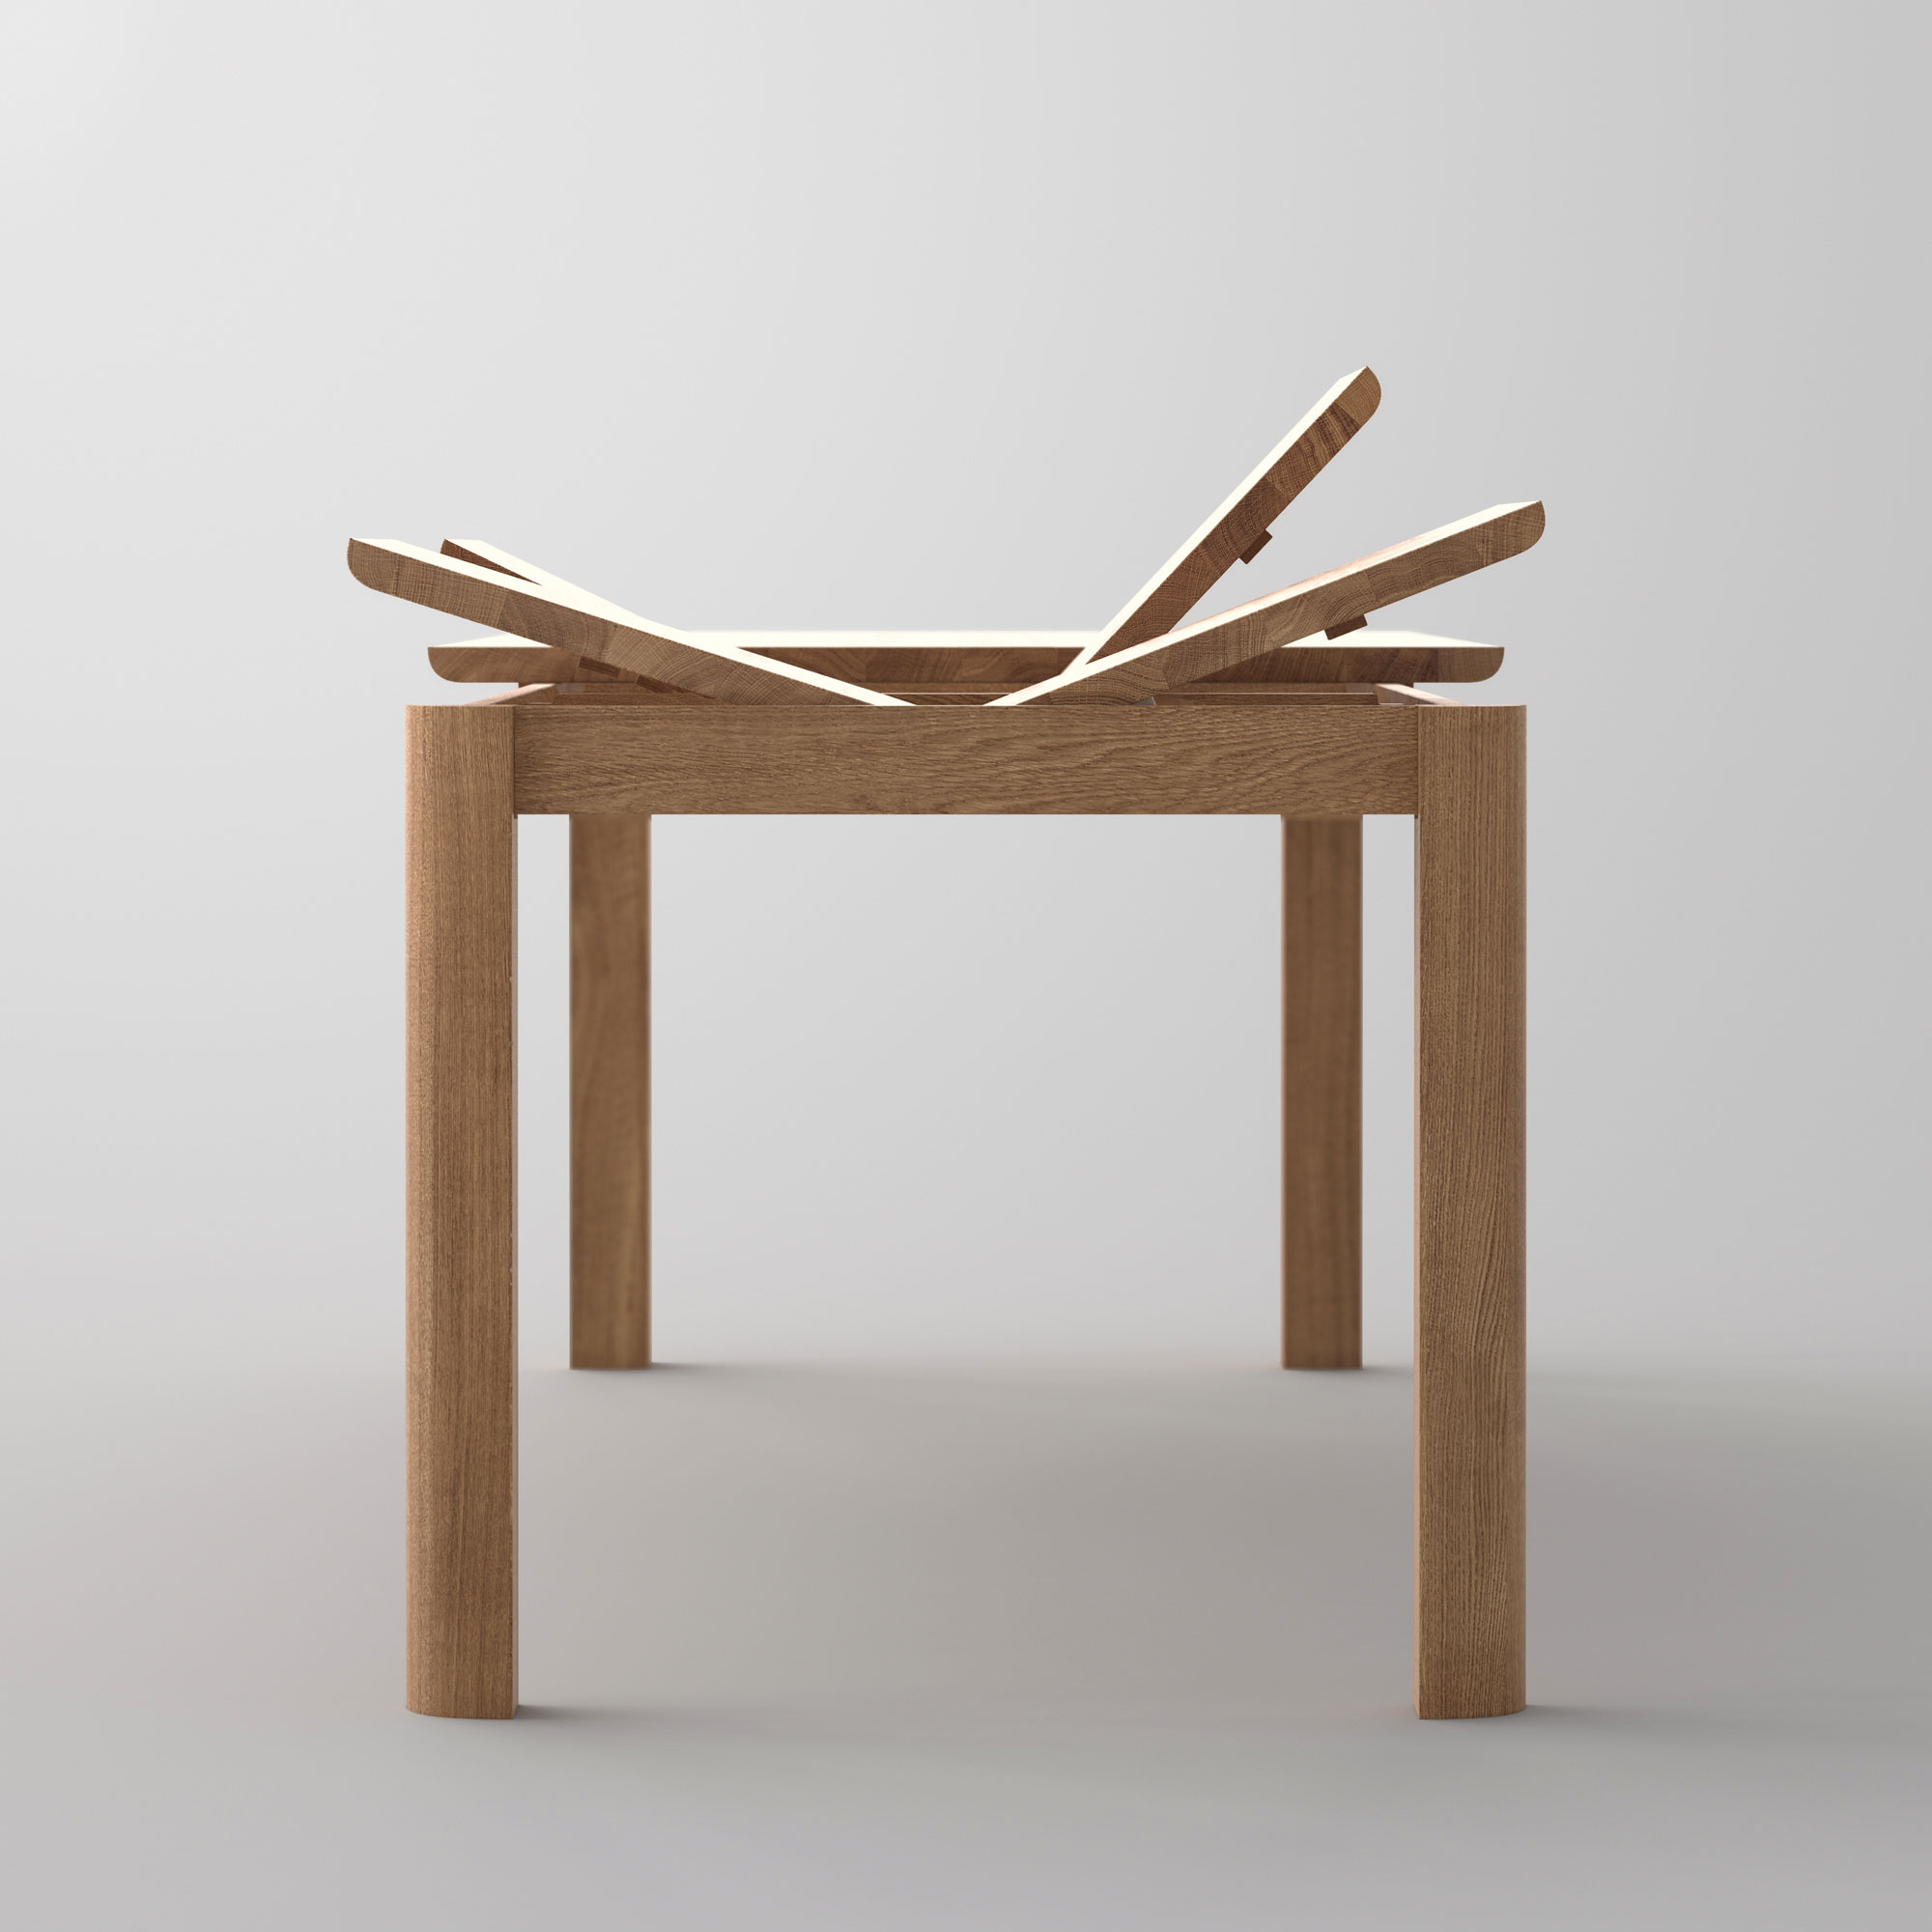 Extendable Dining Table VIVUS BUTTERFLY cam1a custom made in solid wood by vitamin design